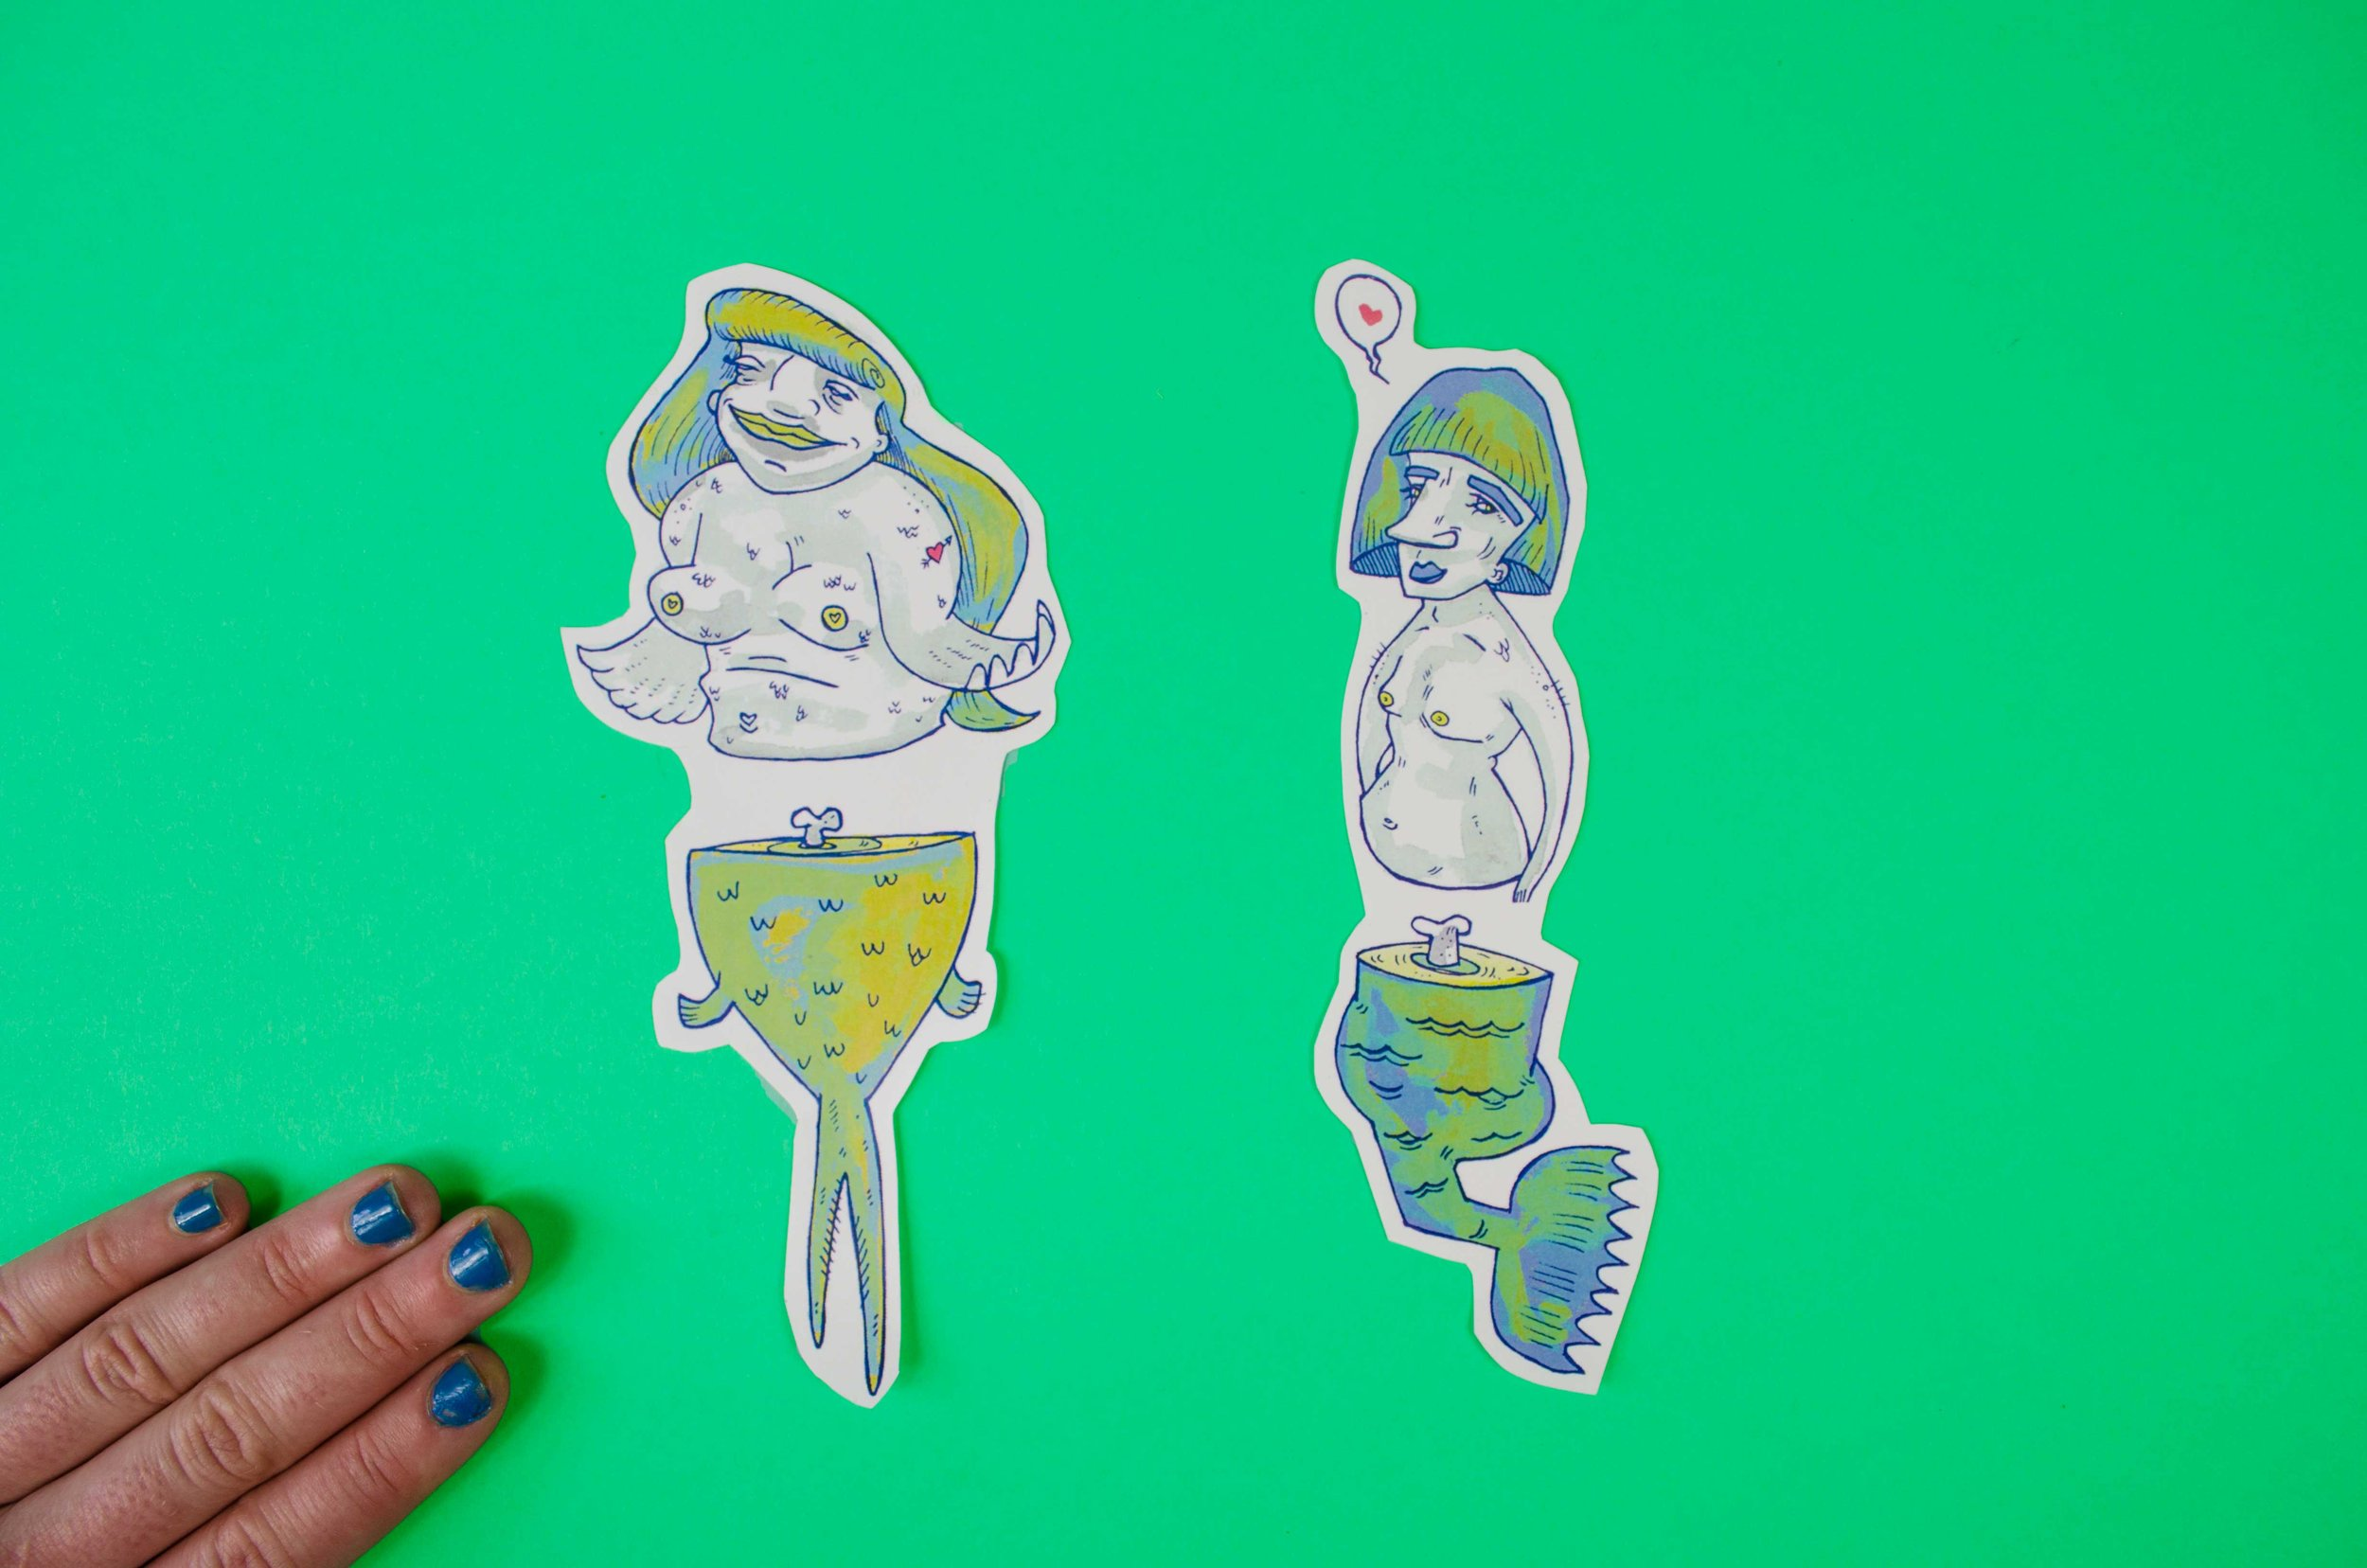 Mermaid Stickers by Baily Crawford